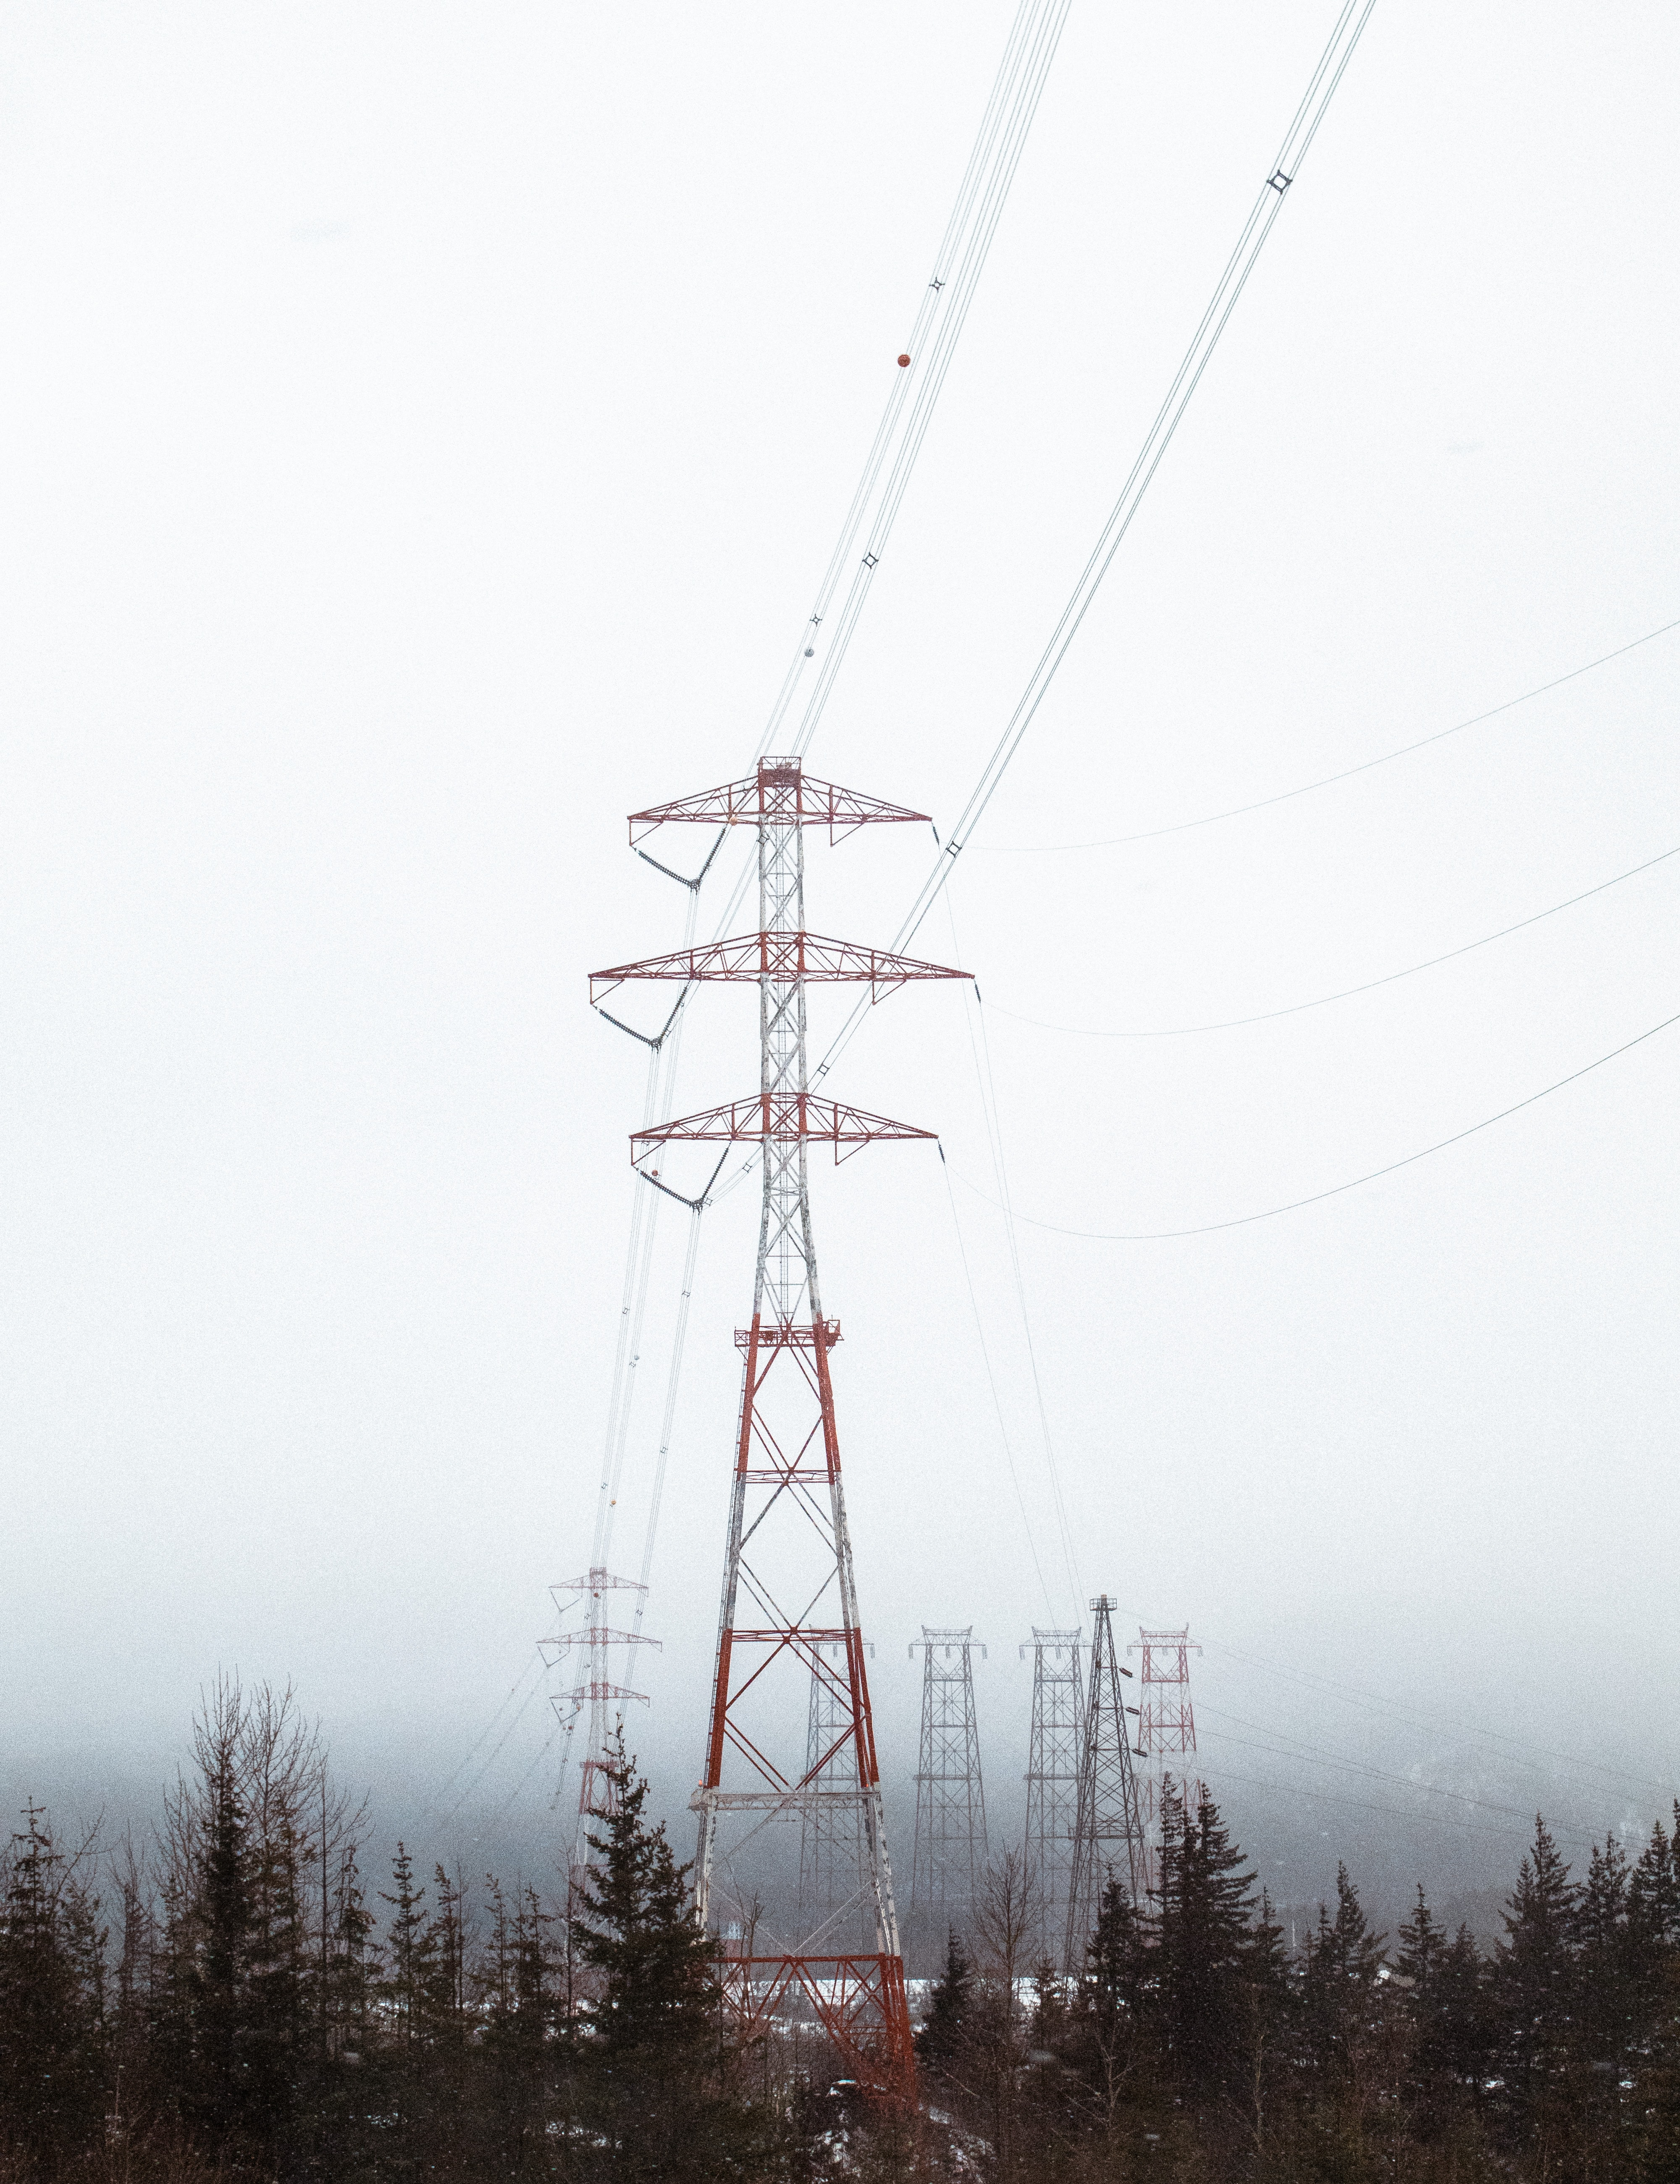 Powerlines amid a pine forest on a foggy winter day